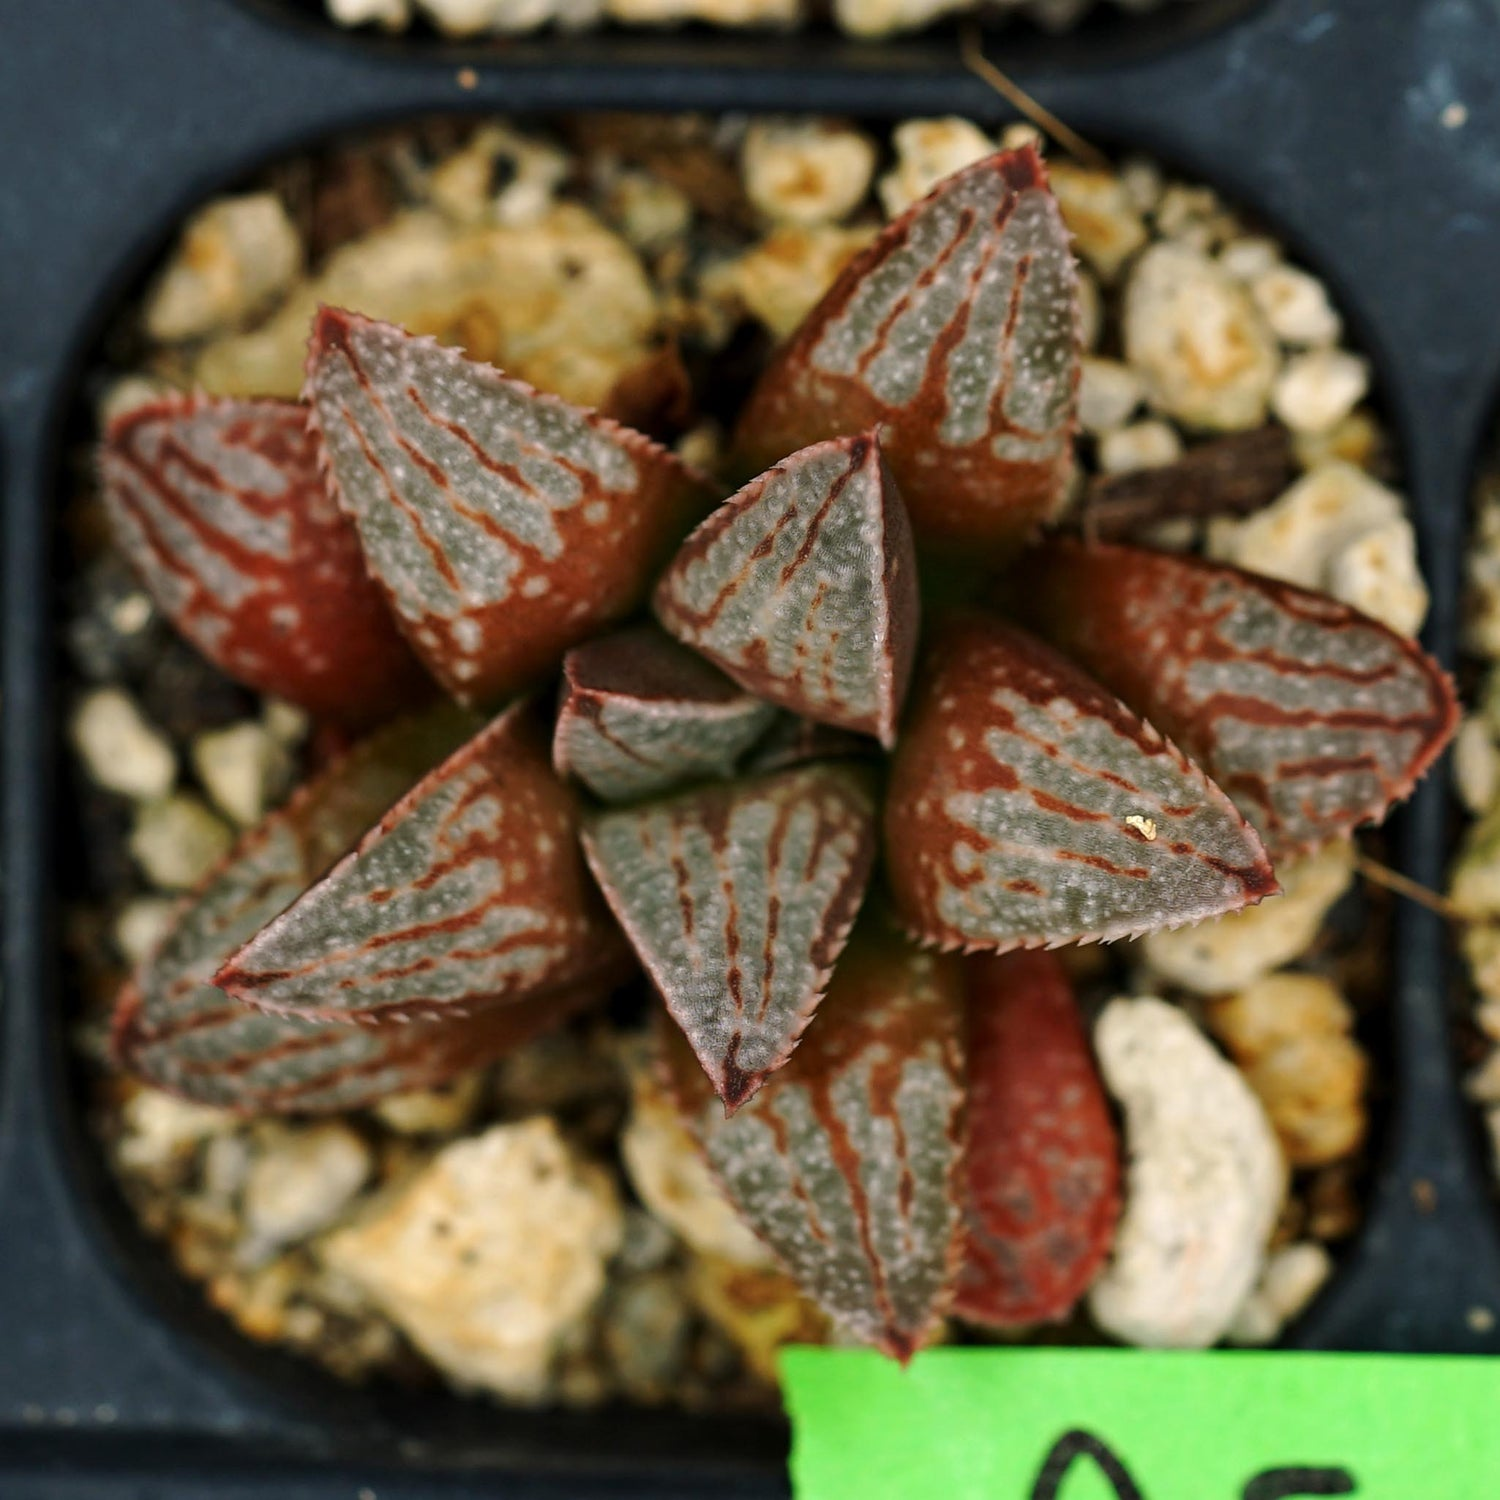 Haworthia hybrid series PP158, 4 siblings